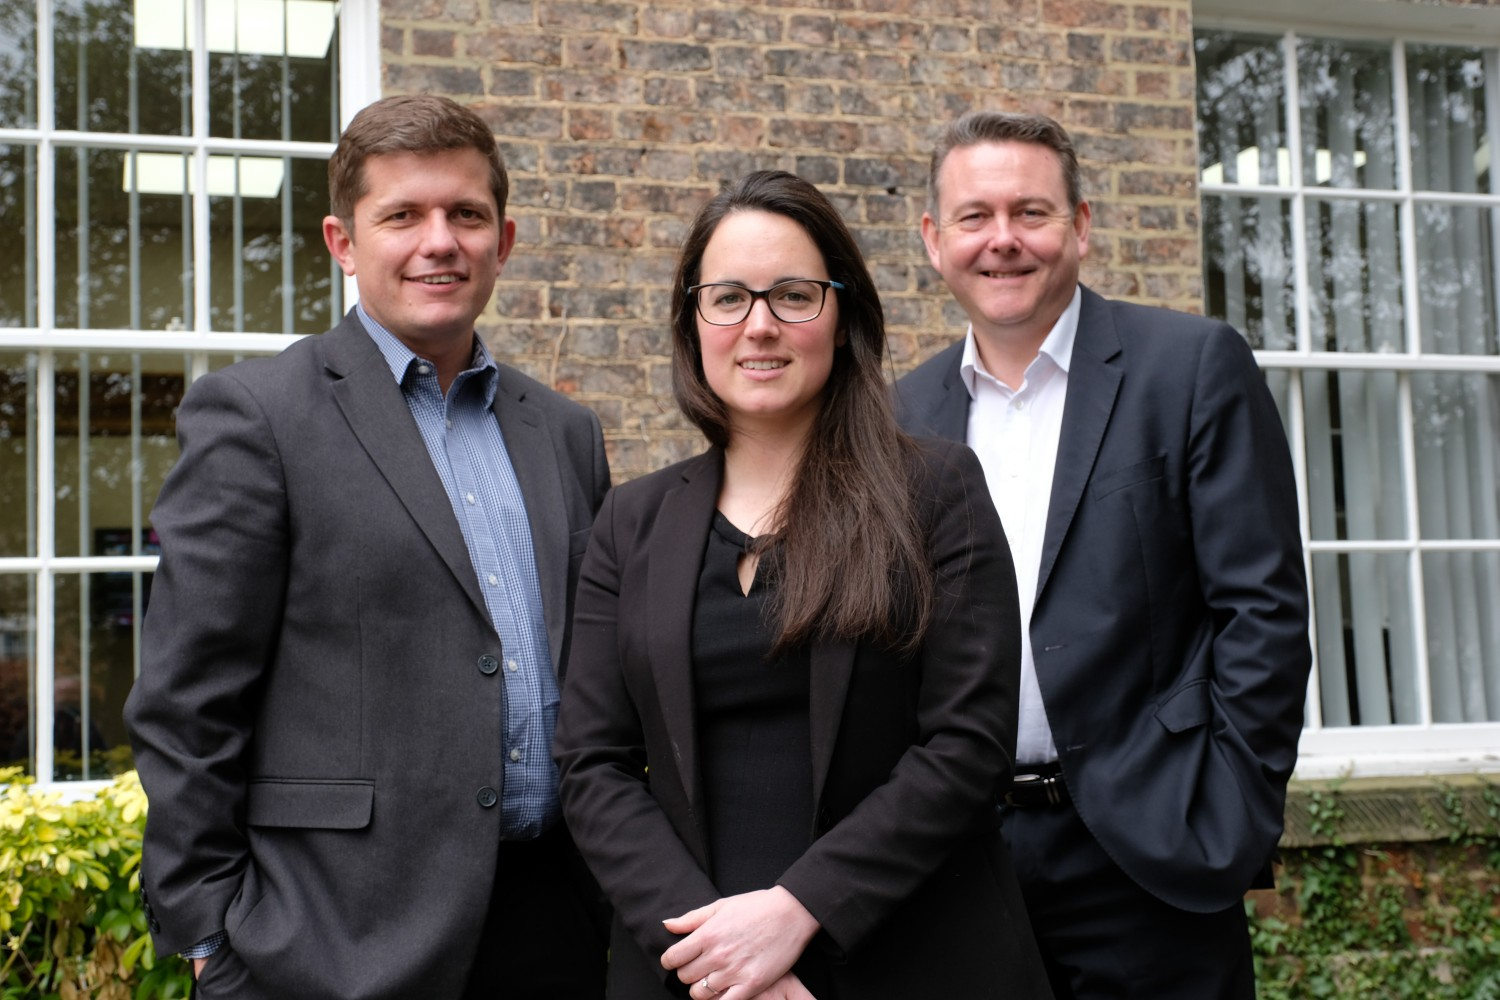 Corporate Finance Team - David, Kat and Angus